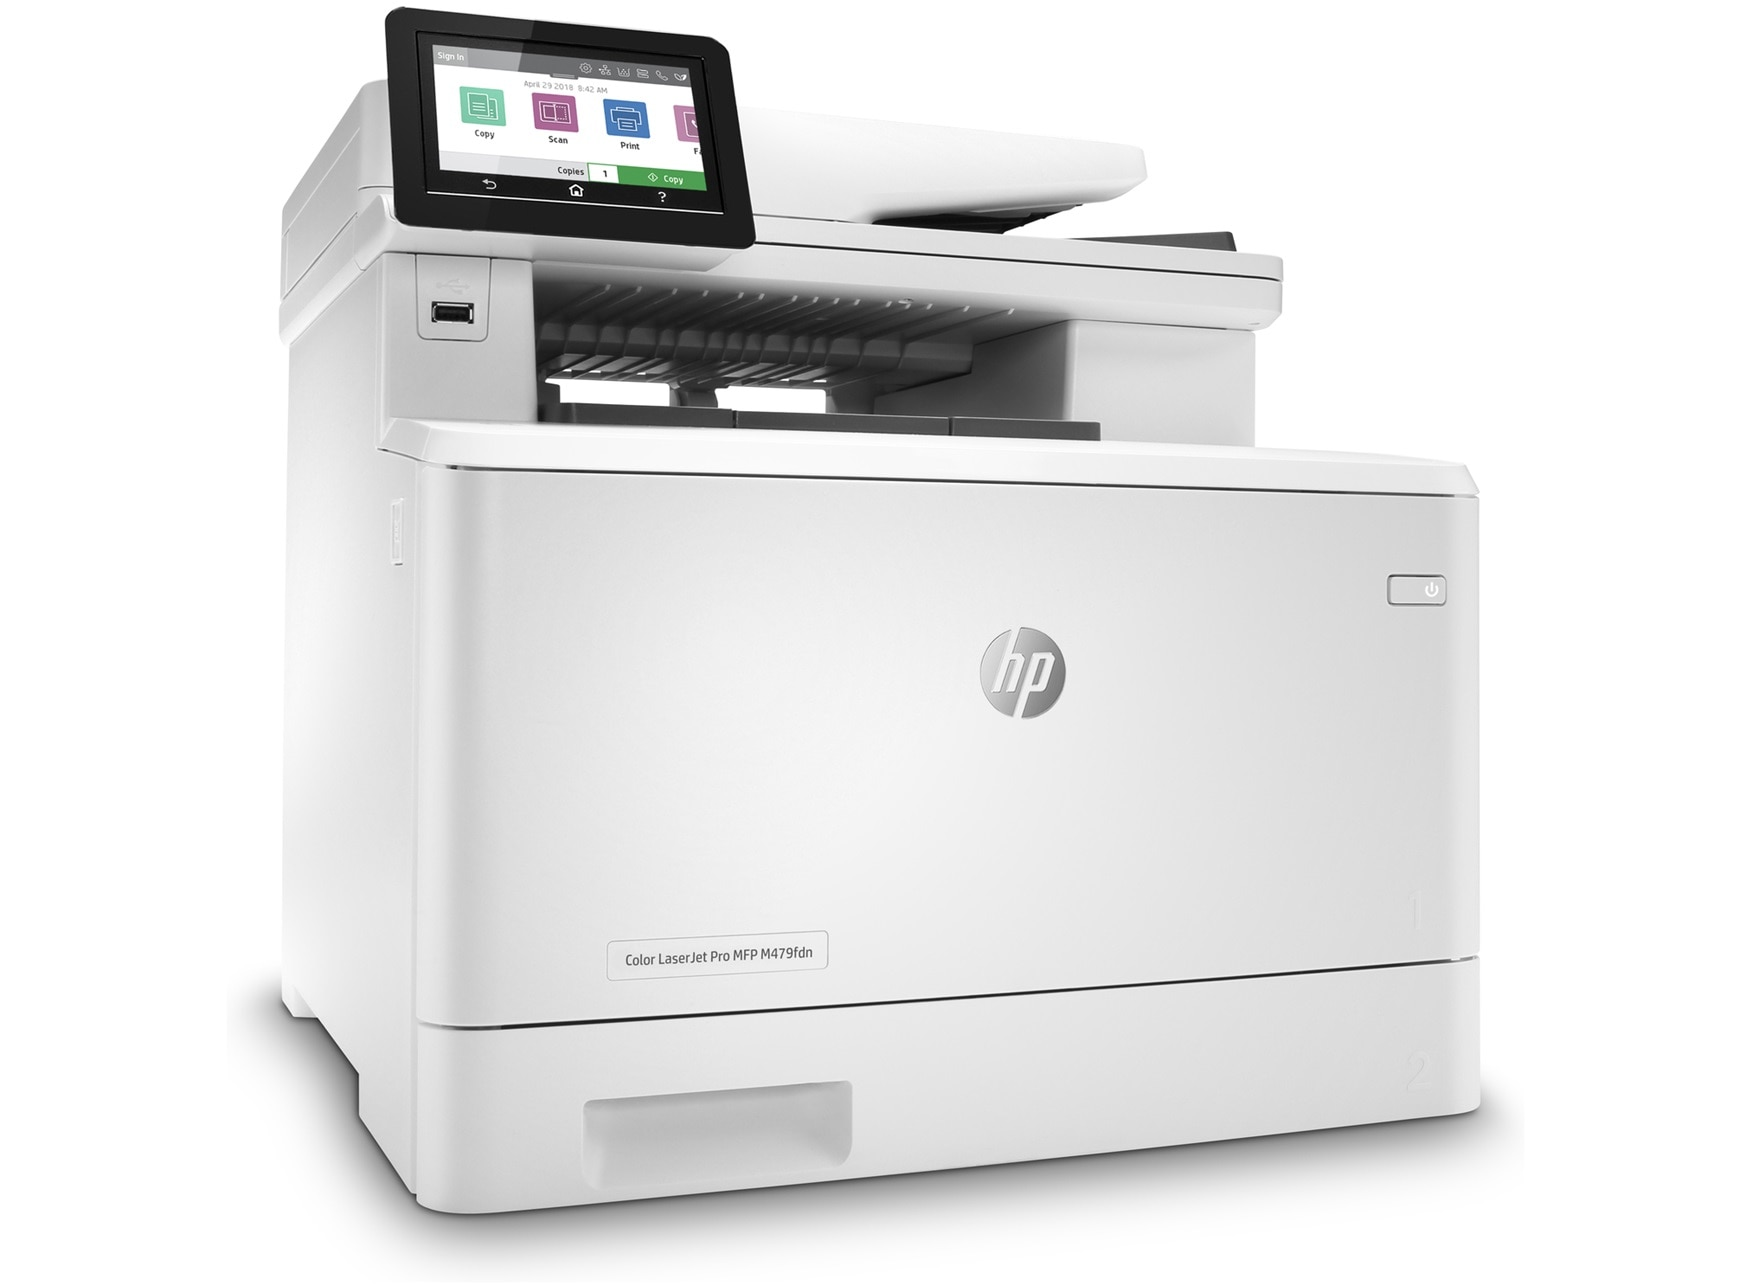 HP Color LaserJet Pro MFP M479fdn Multifunction printer with Fax